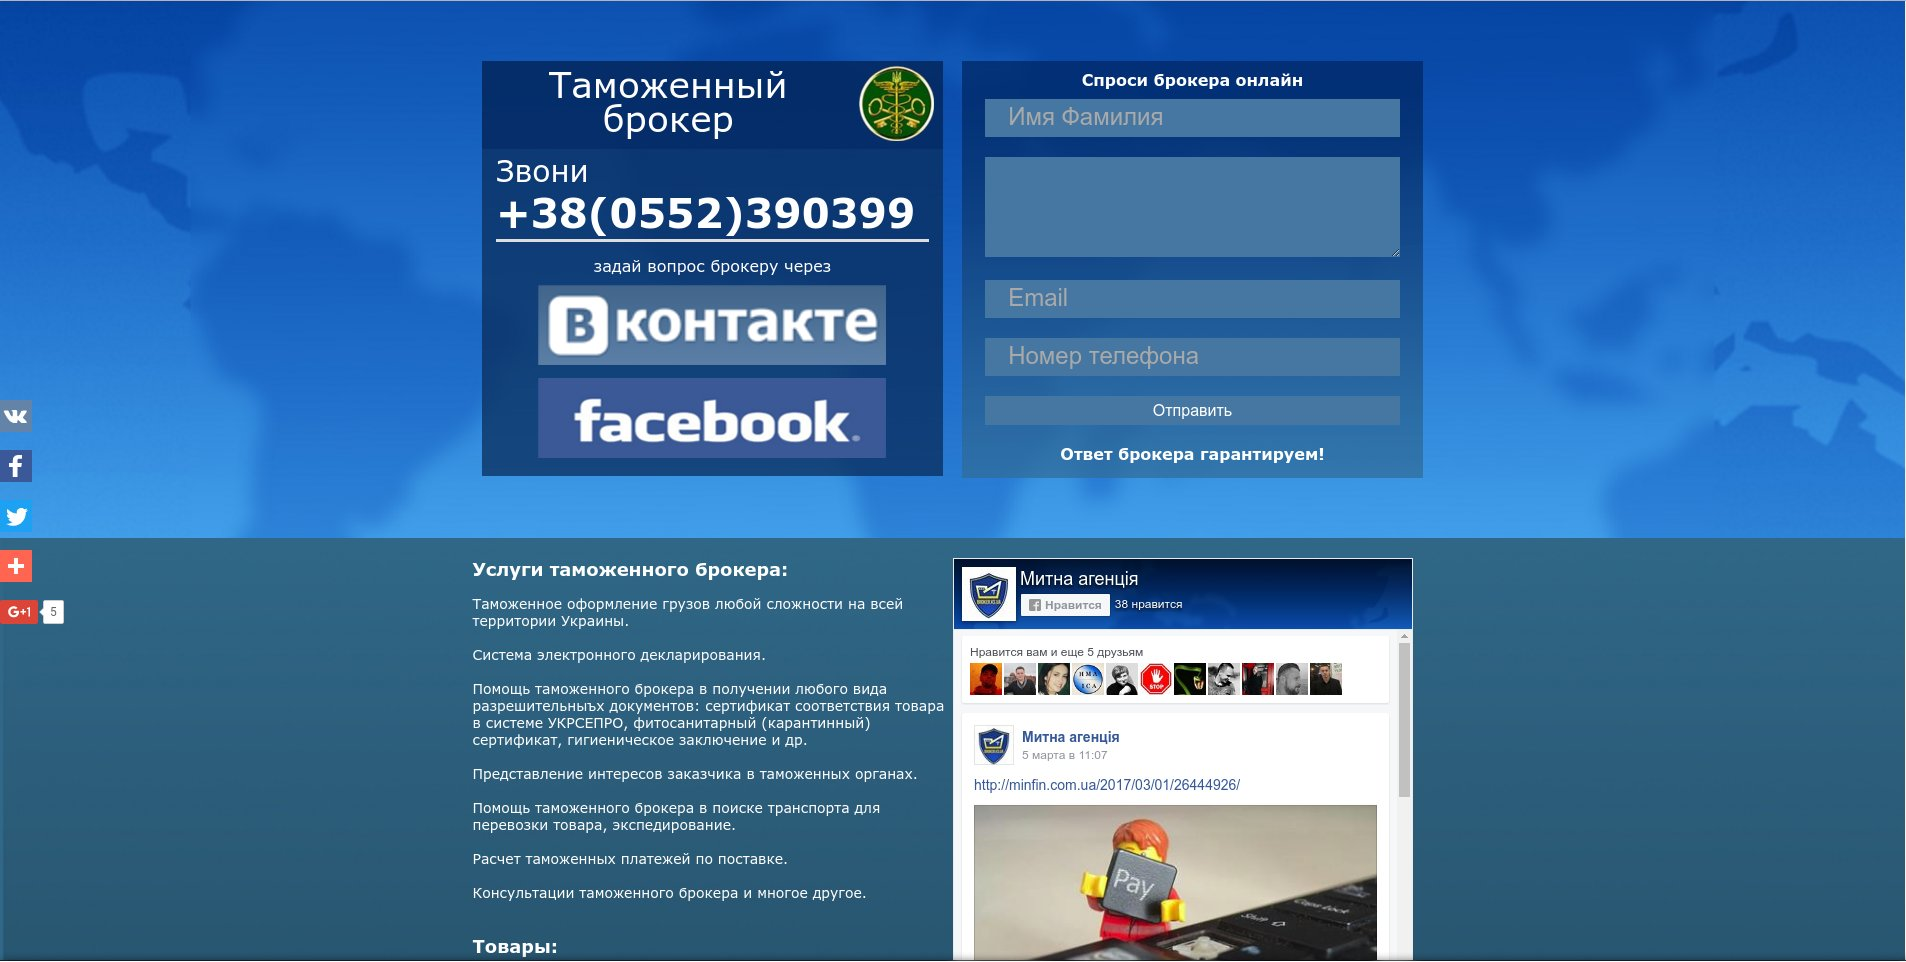 Landing promo page of a customs broker. Kherson